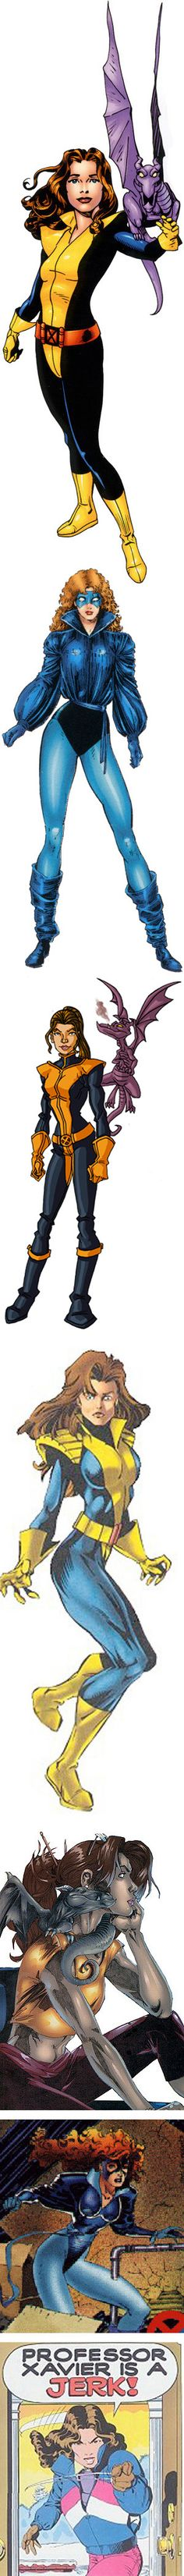 The many evolutions of Shadowcat.